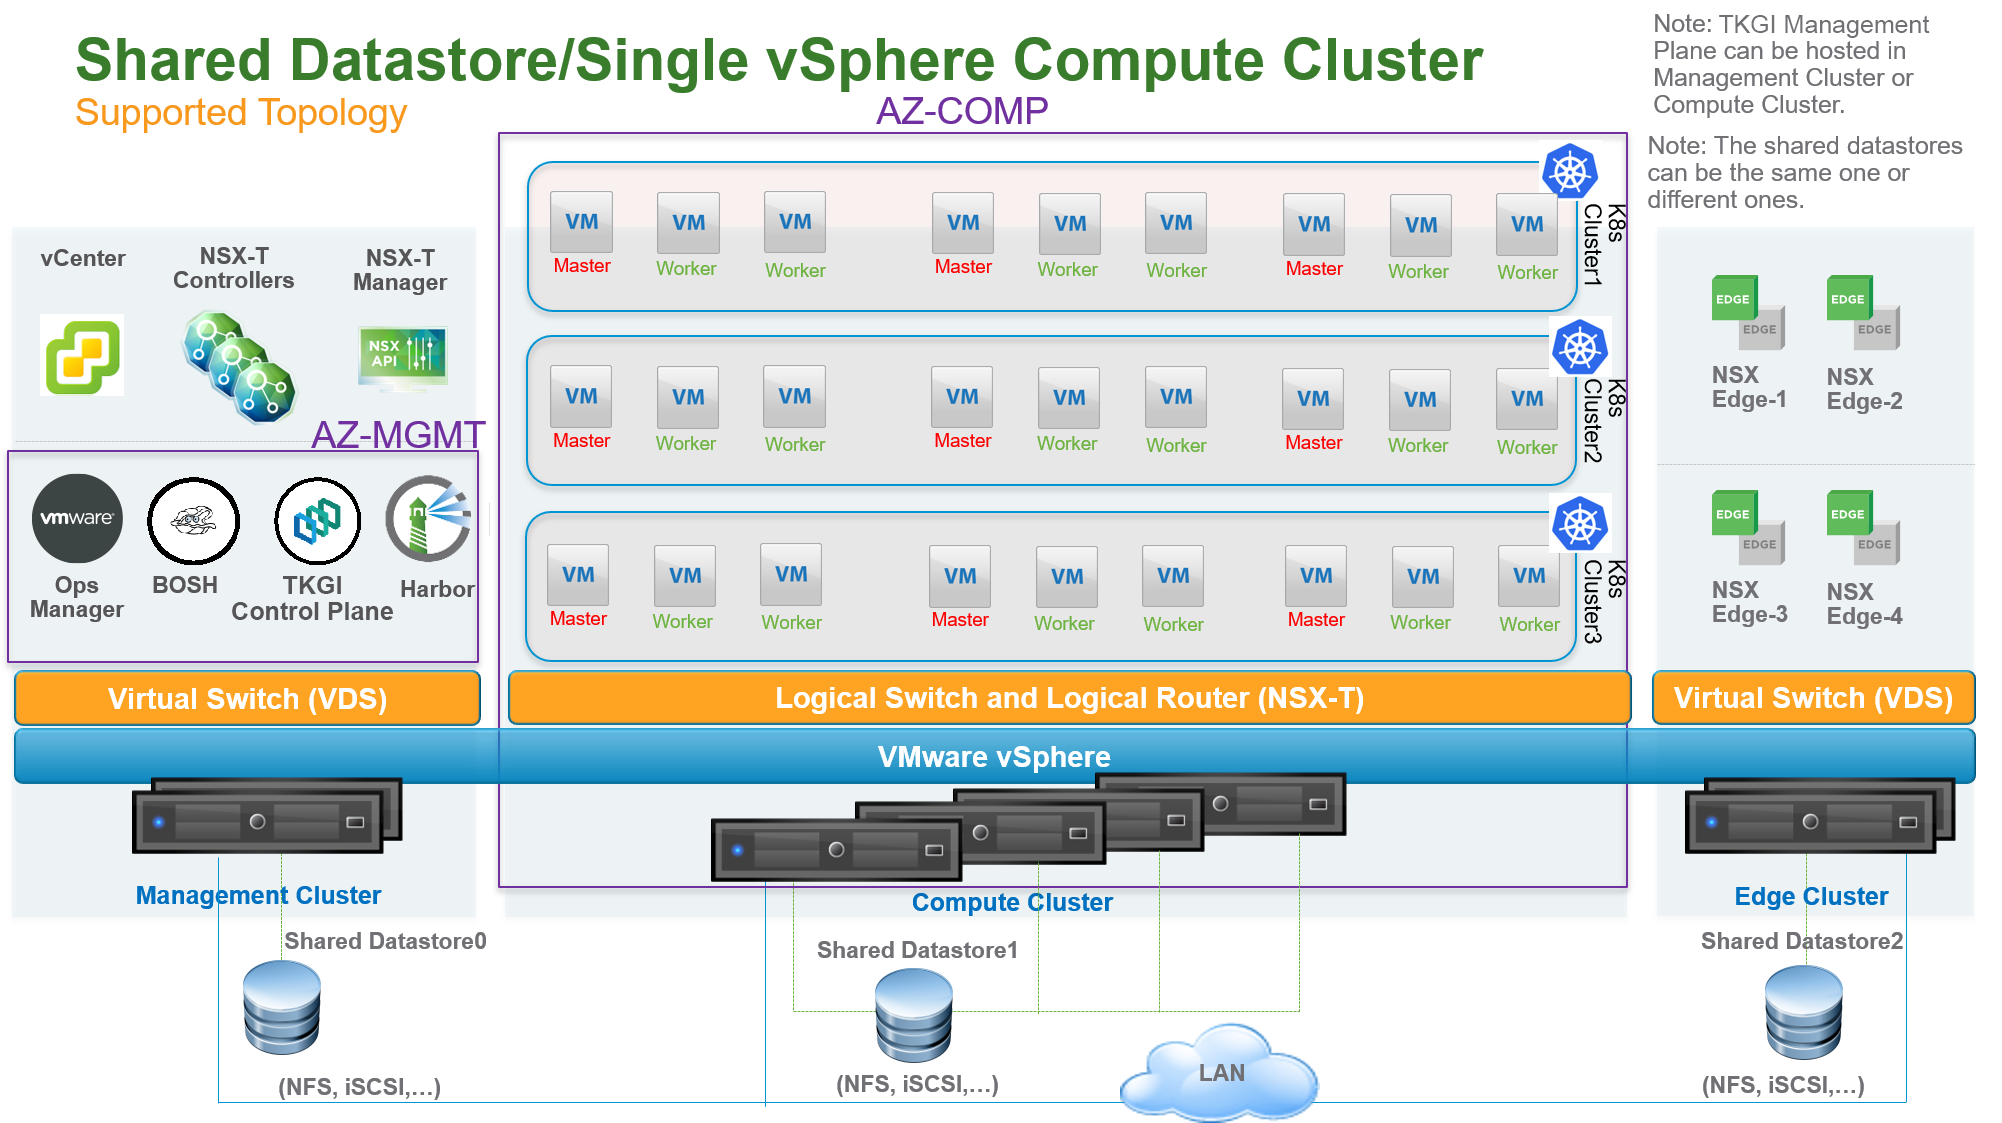 Single vSphere compute cluster with shared VMFS datastore